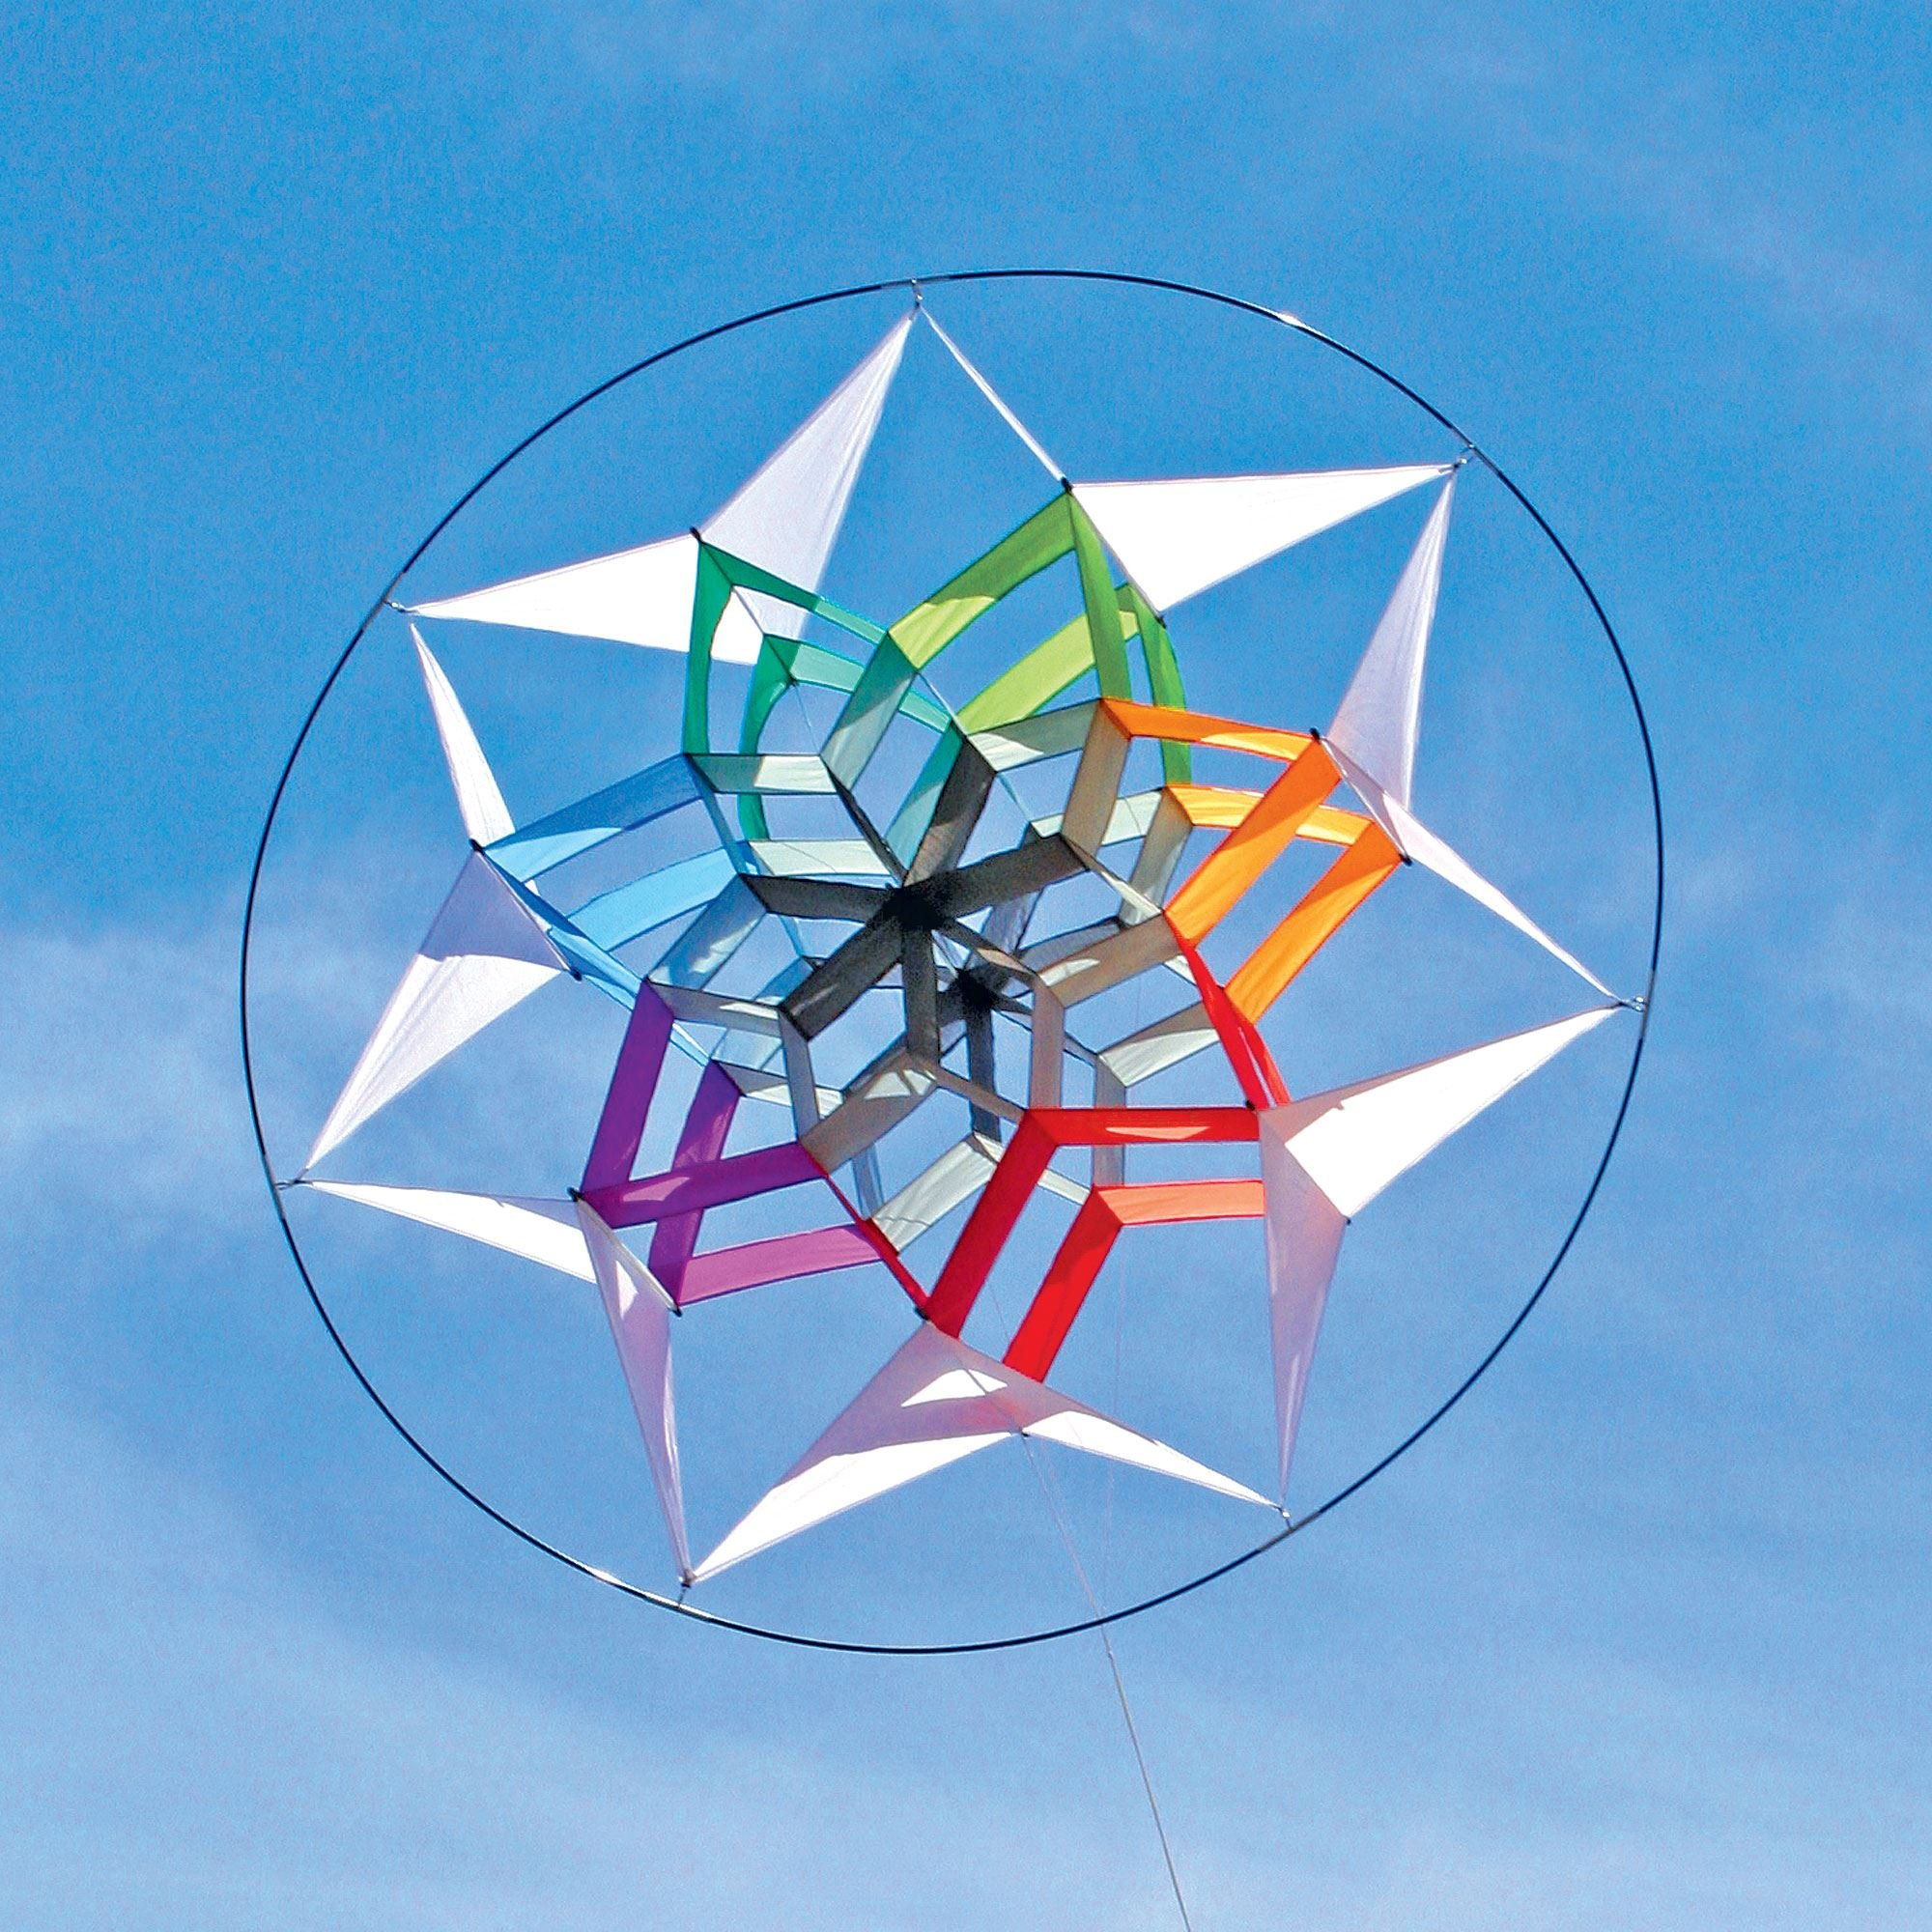 Into The Wind Star 7 Rainbow Facet Box Kite by Into The Wind